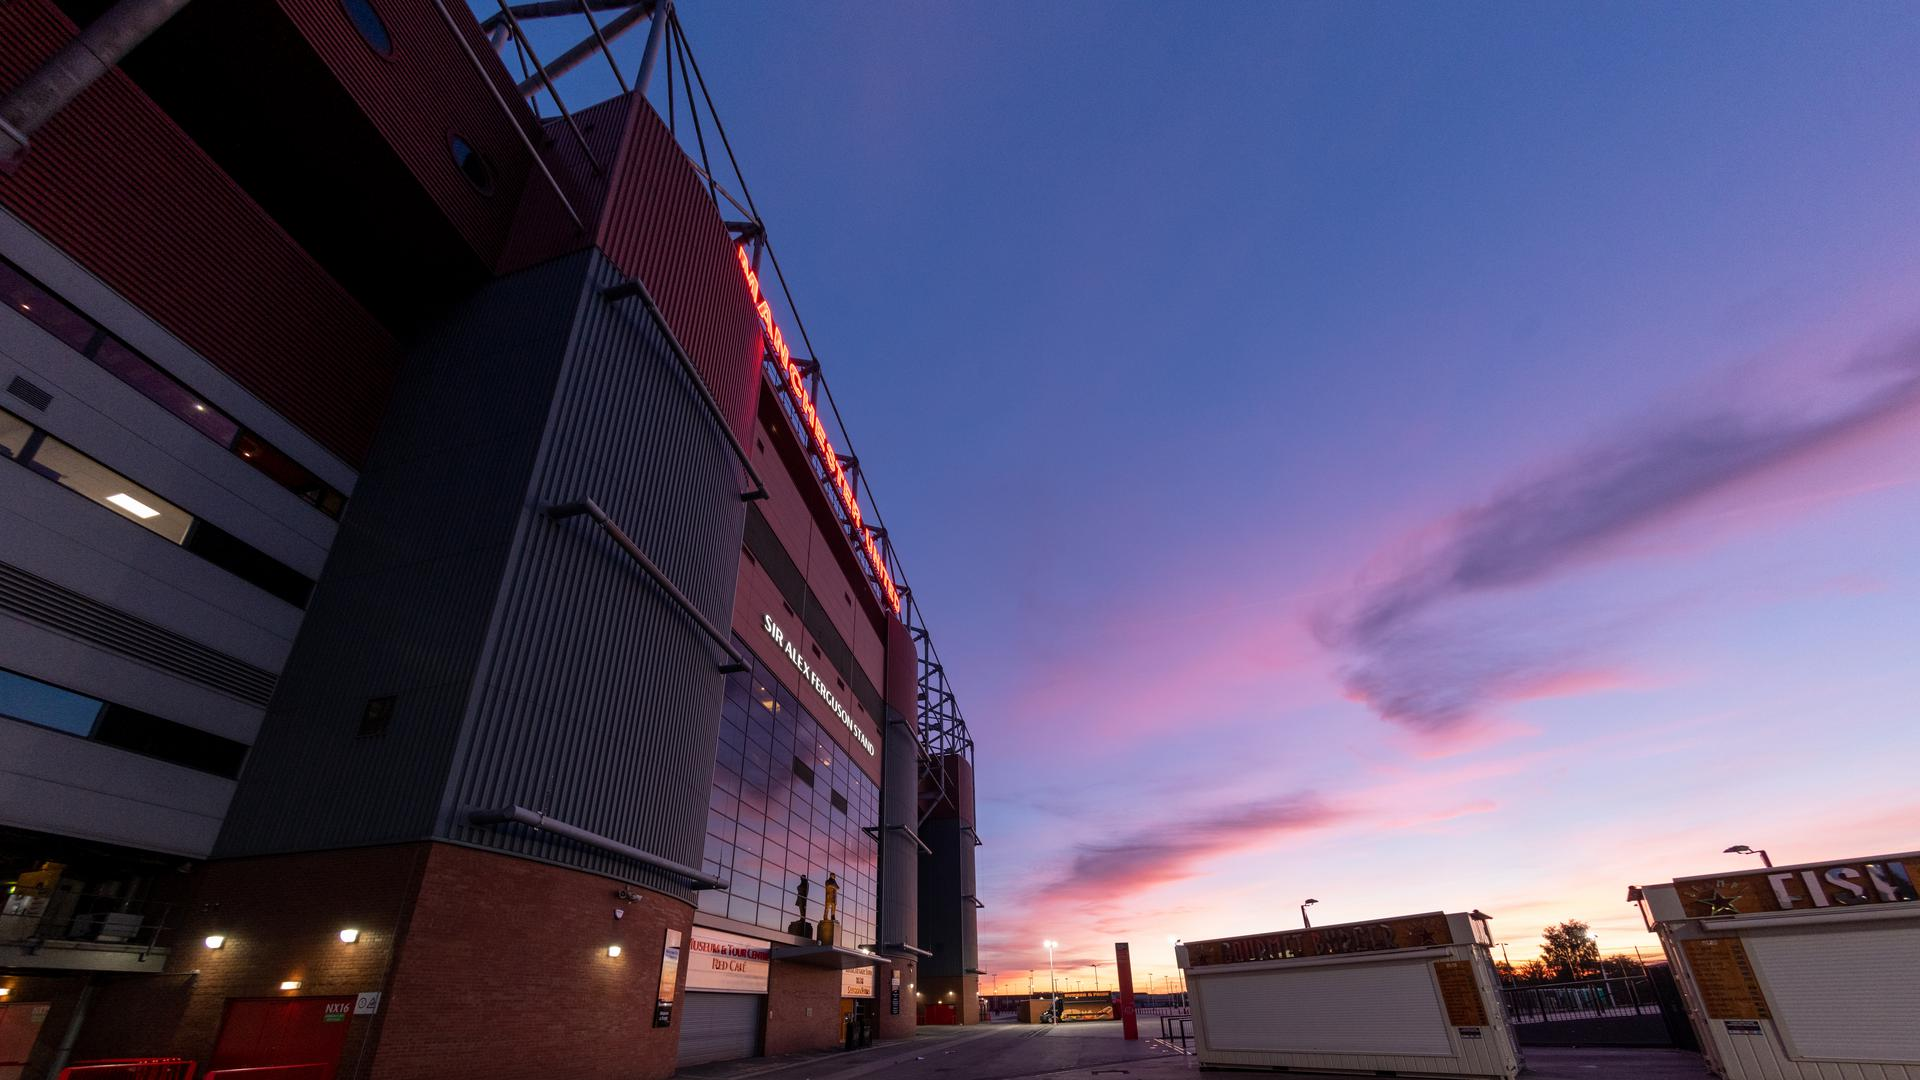 Old Trafford's Sir Alex Ferguson Stand as viewed in the early evening.